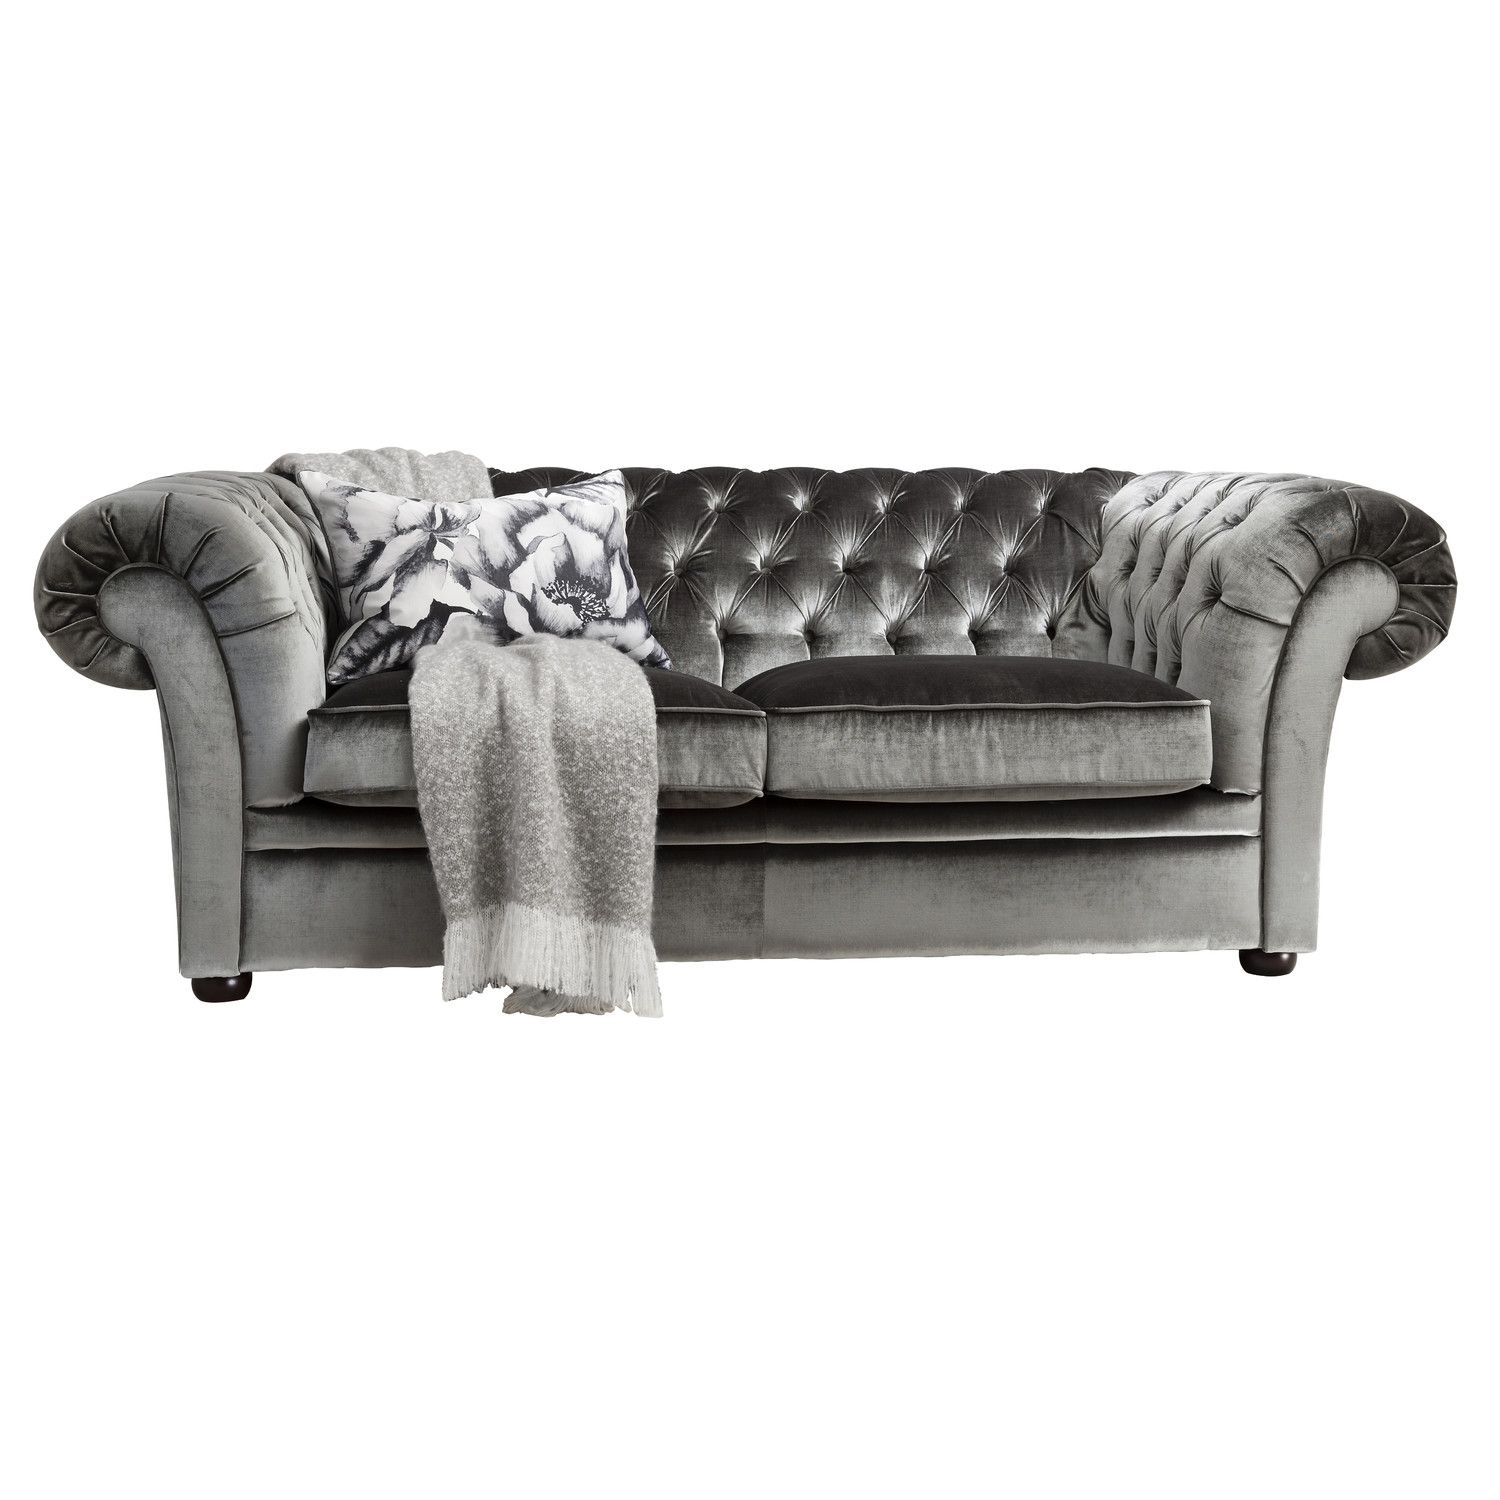 Gallery Sarina 3 Seater Sofa